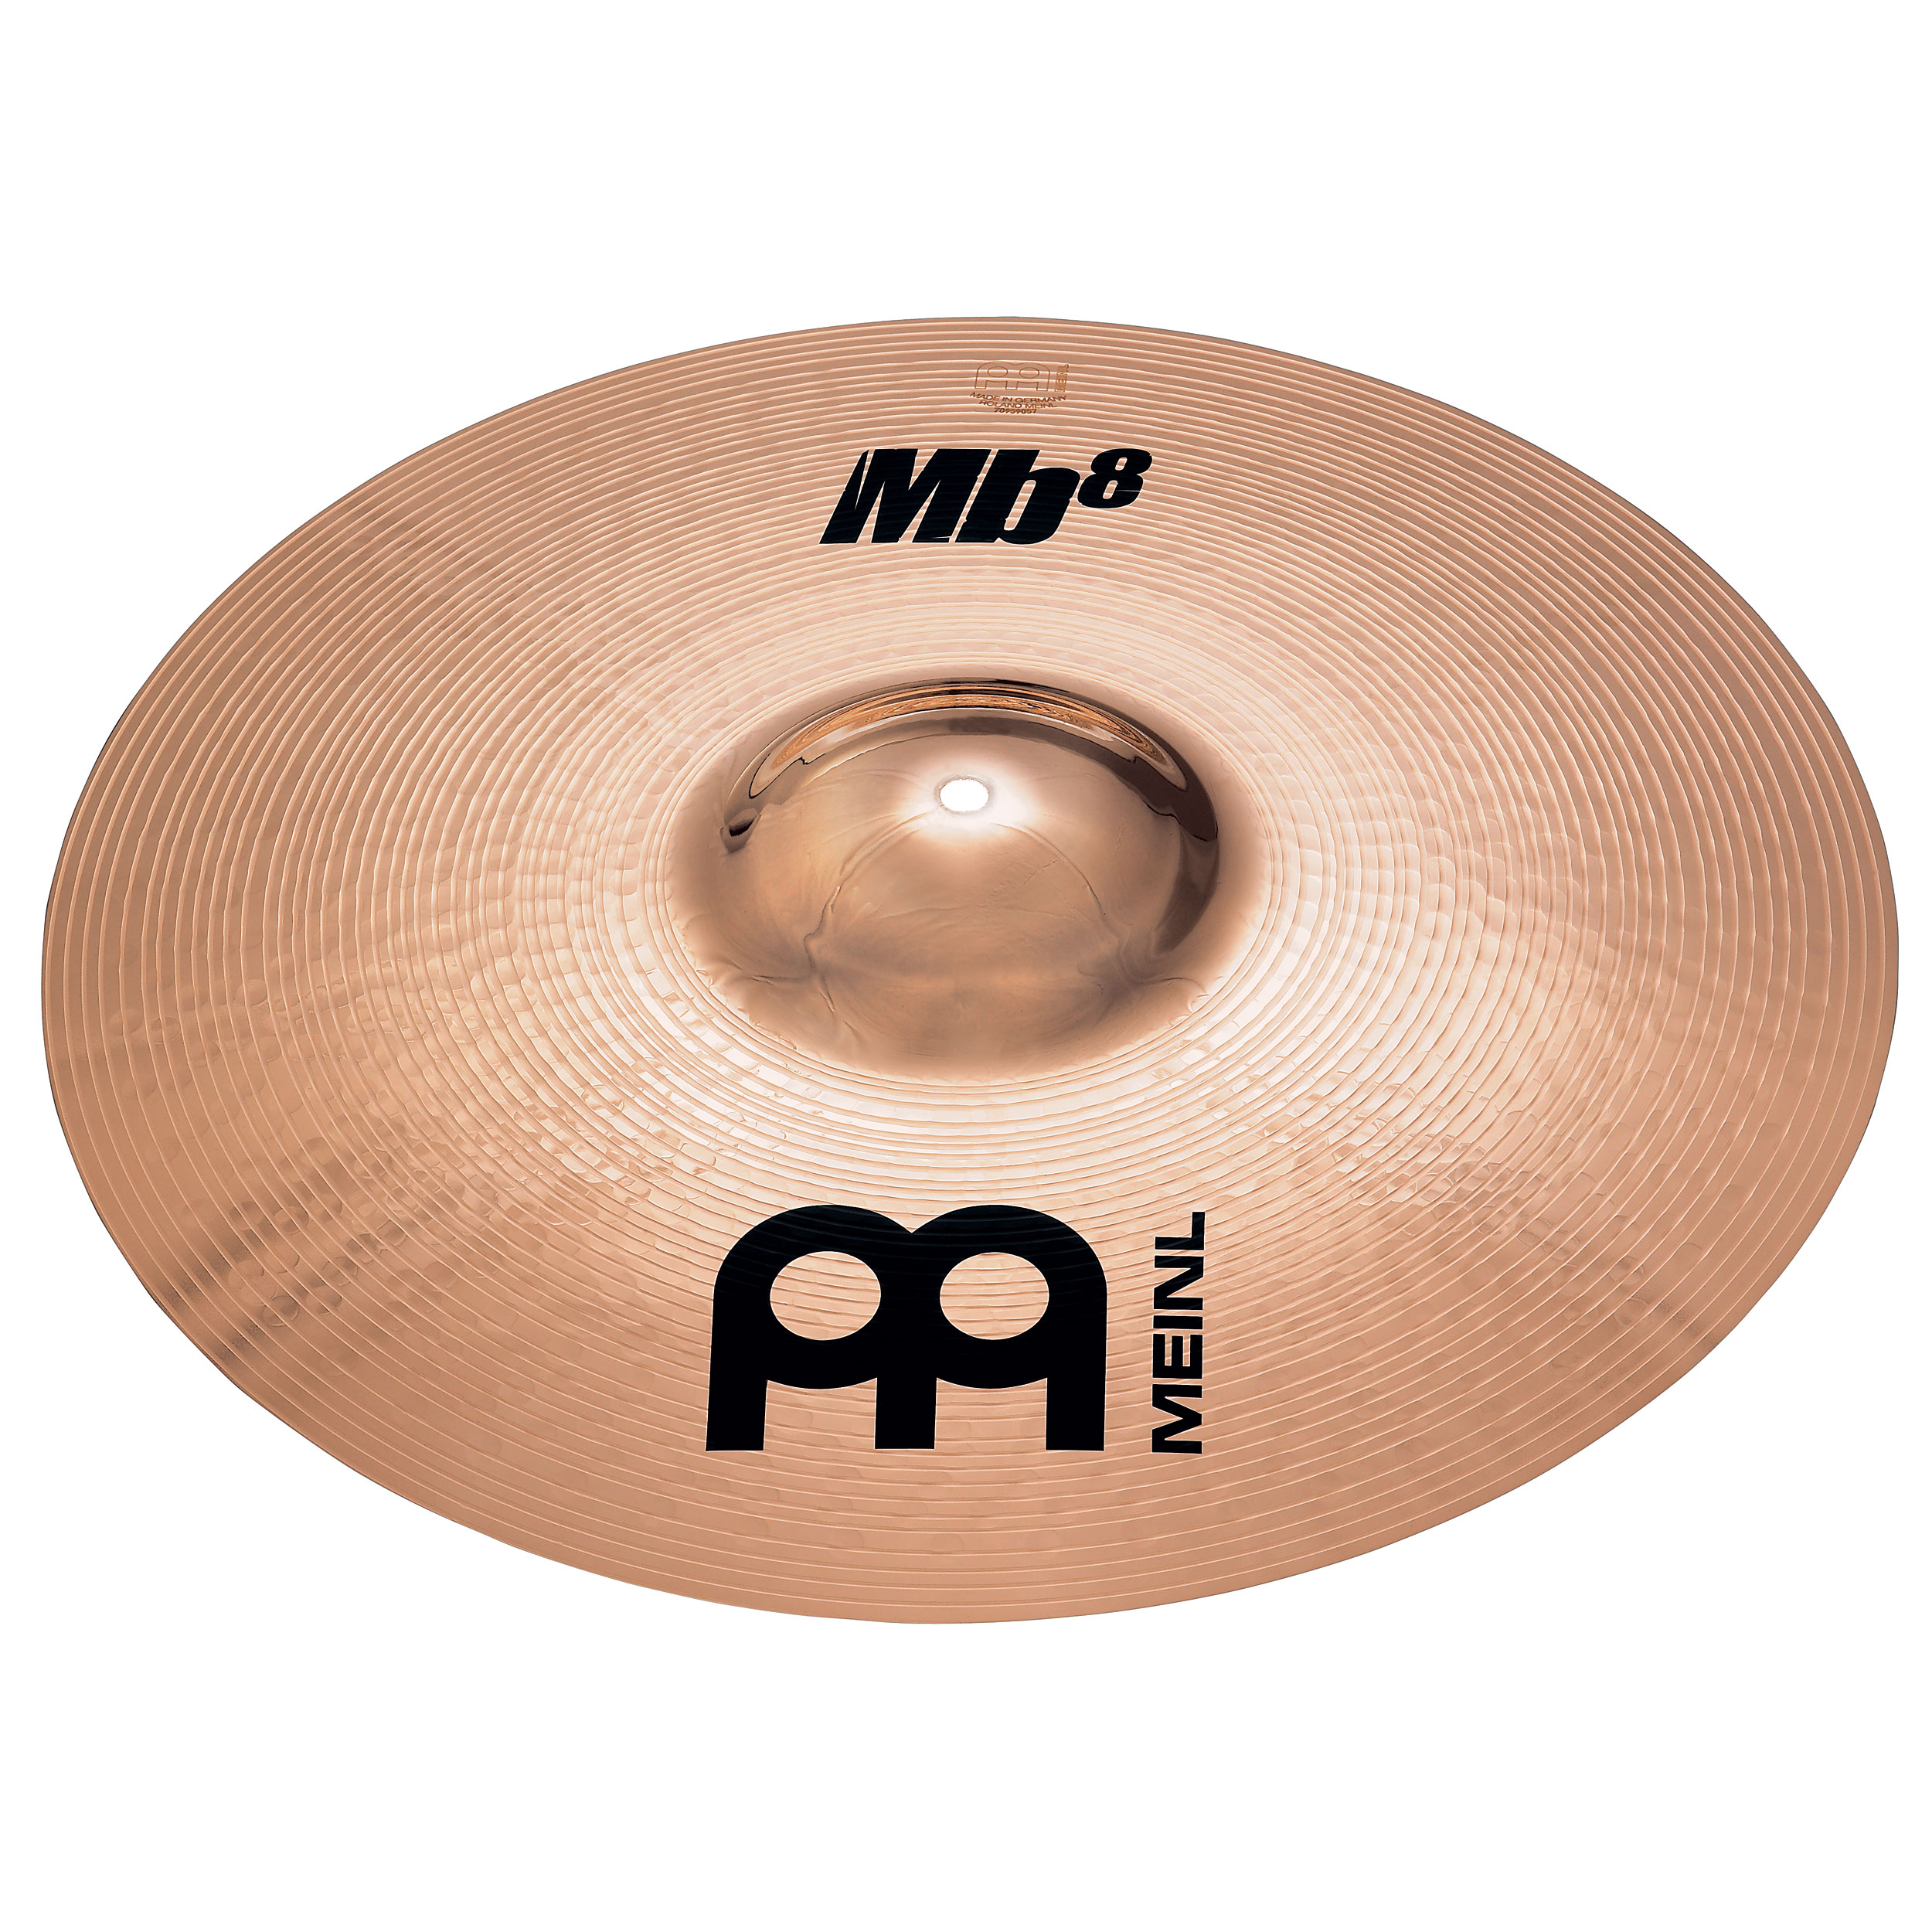 "Meinl 22"" Mb8 Heavy Ride Cymbal"